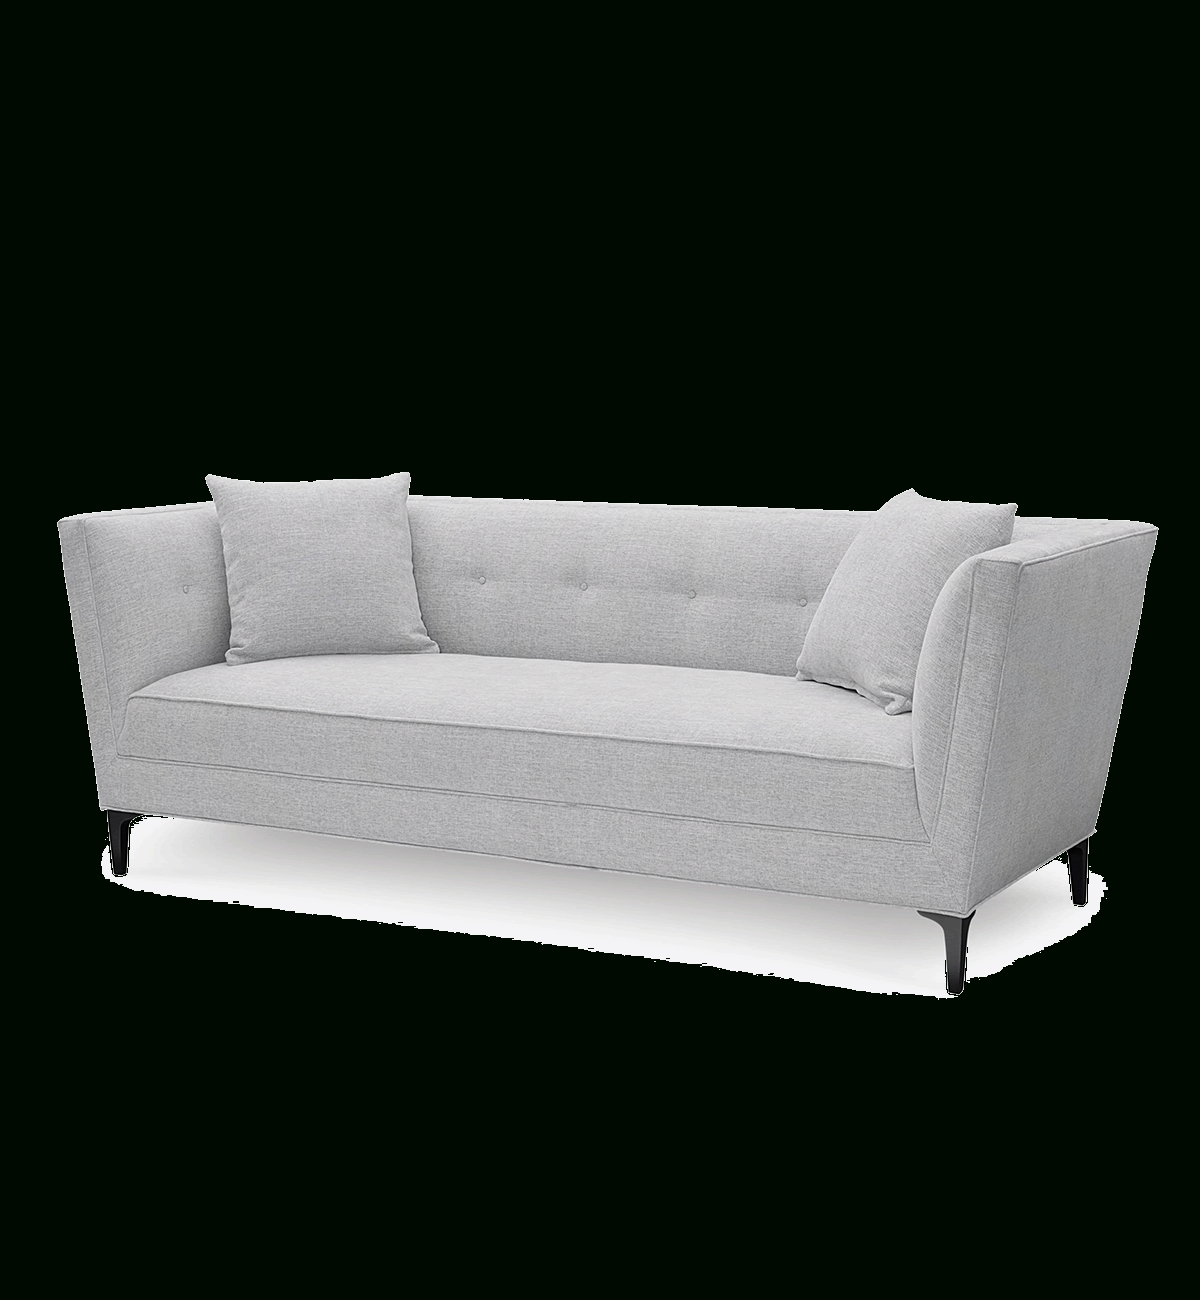 Sectional Sofas Couches And Sofas – Macy's Inside 2018 Macys Sectional Sofas (View 17 of 20)